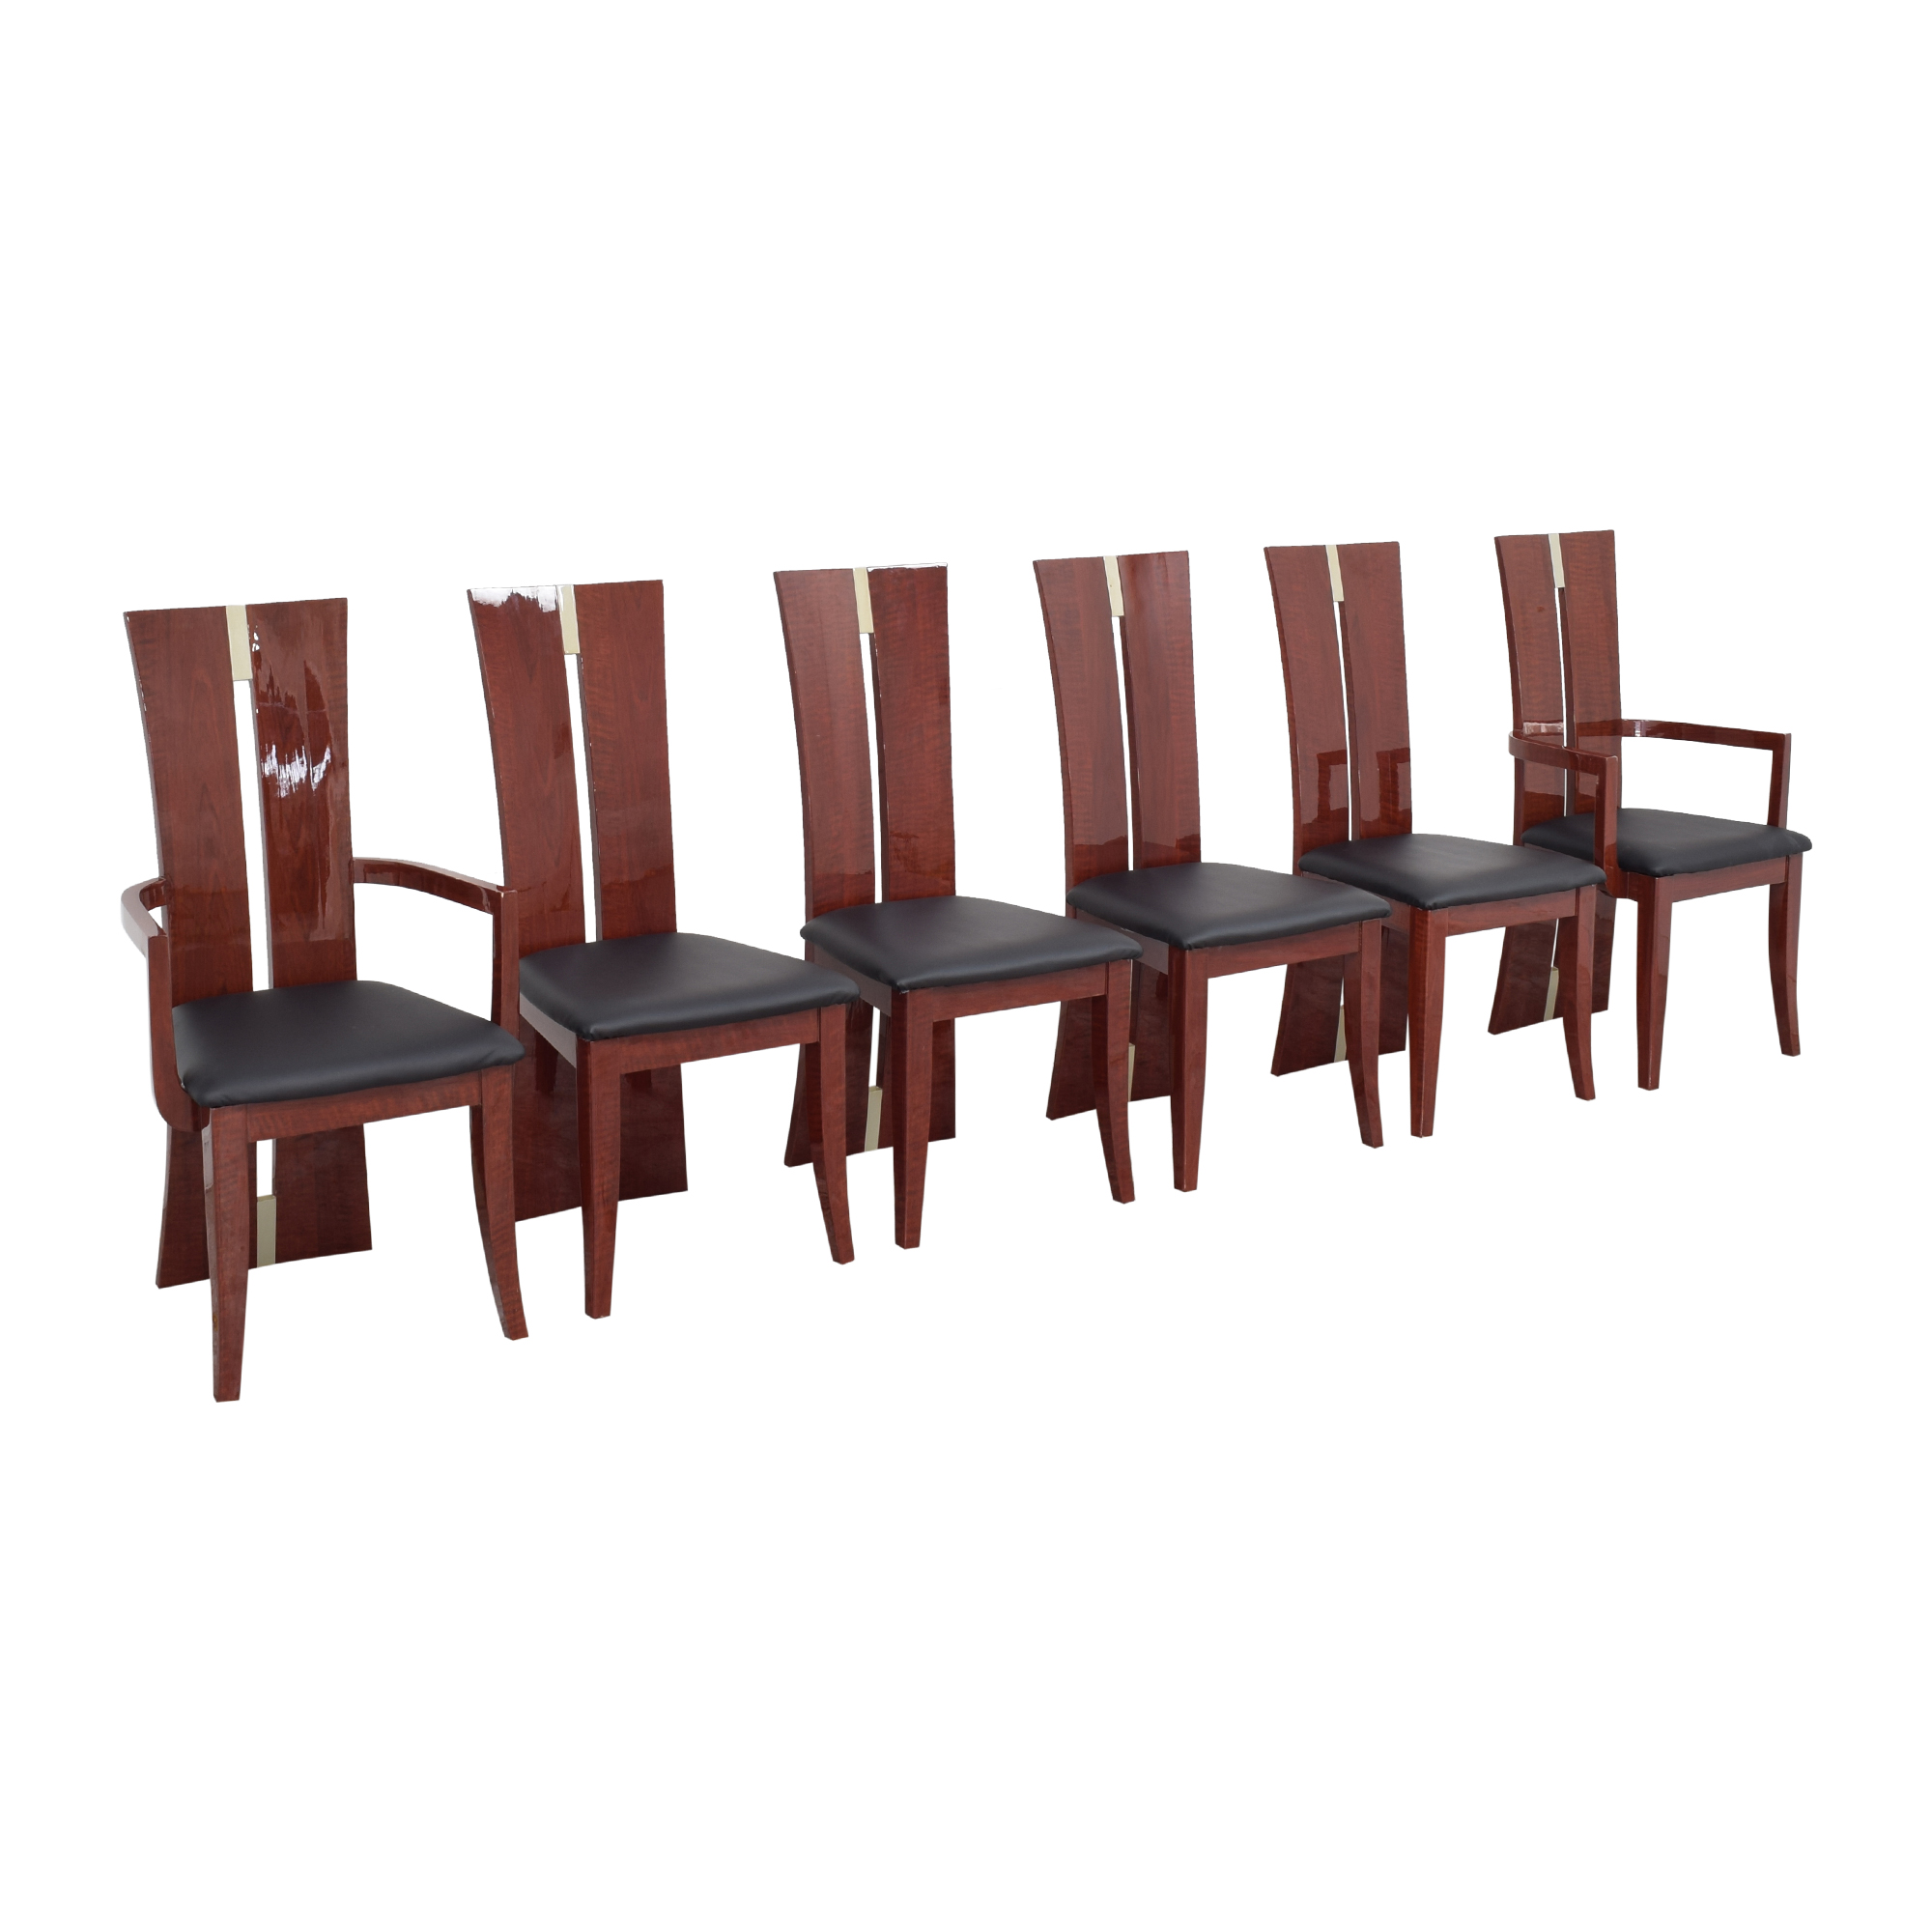 High Back Dining Chairs / Chairs